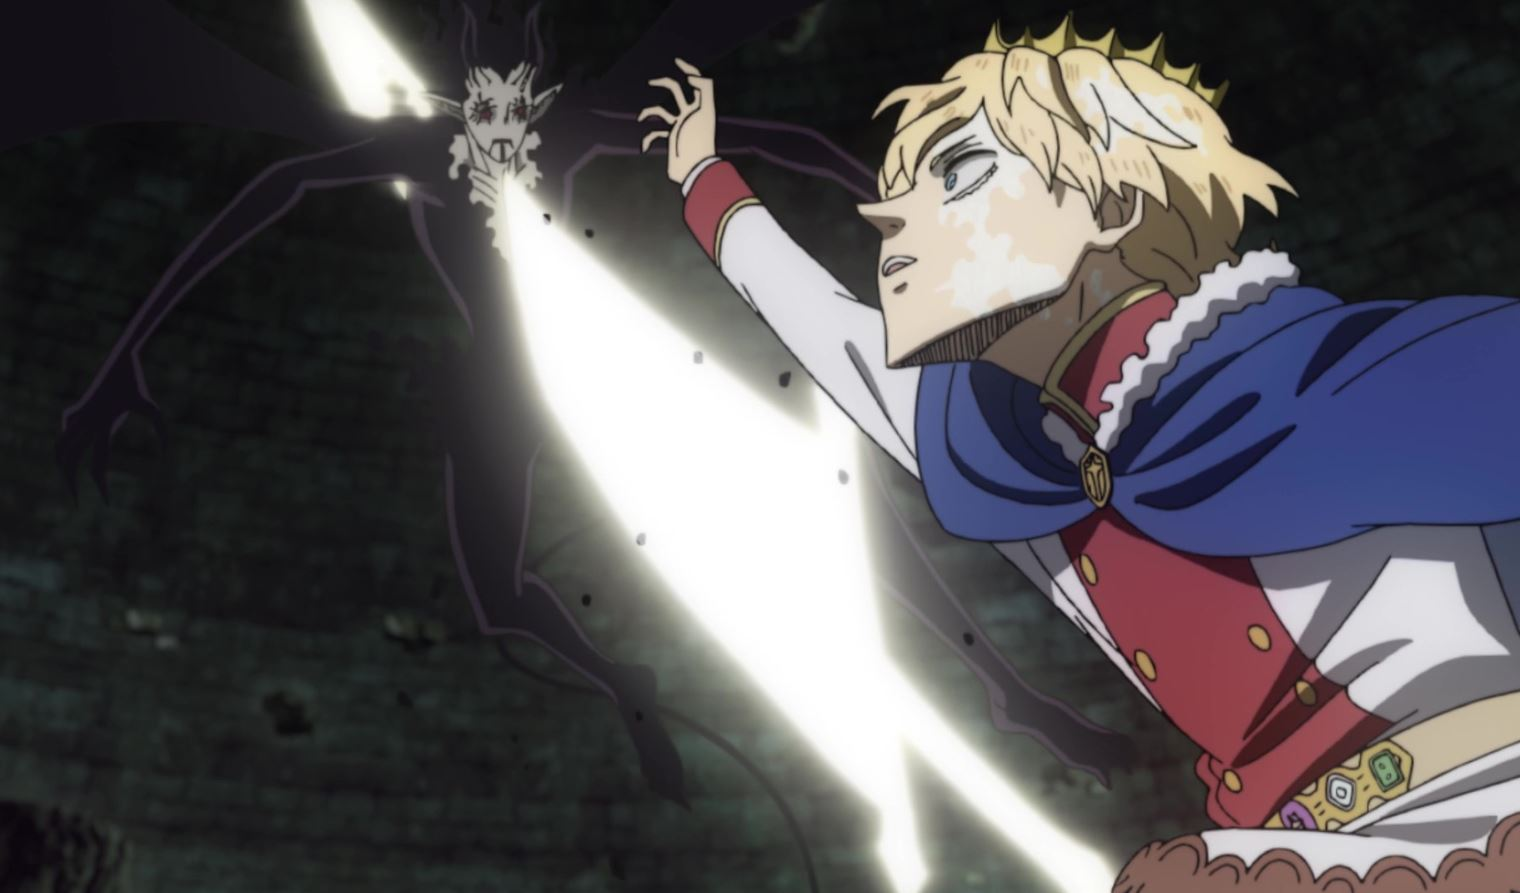 Black Clover: Ranking the Strongest Characters